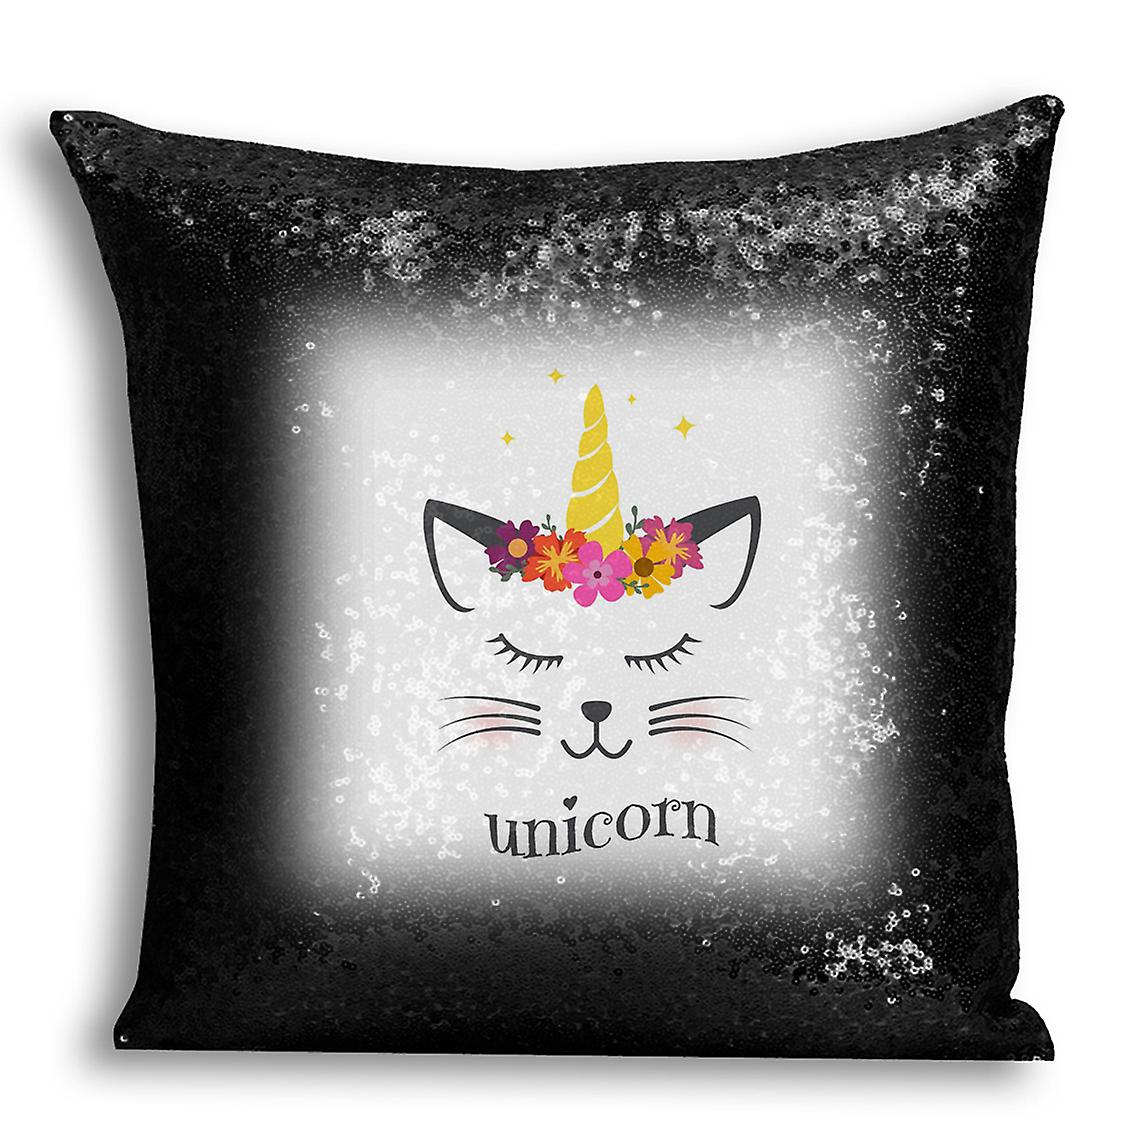 With tronixsUnicorn Decor 2 Home Inserted I Printed Black Design Sequin CushionPillow For Cover DEH2I9